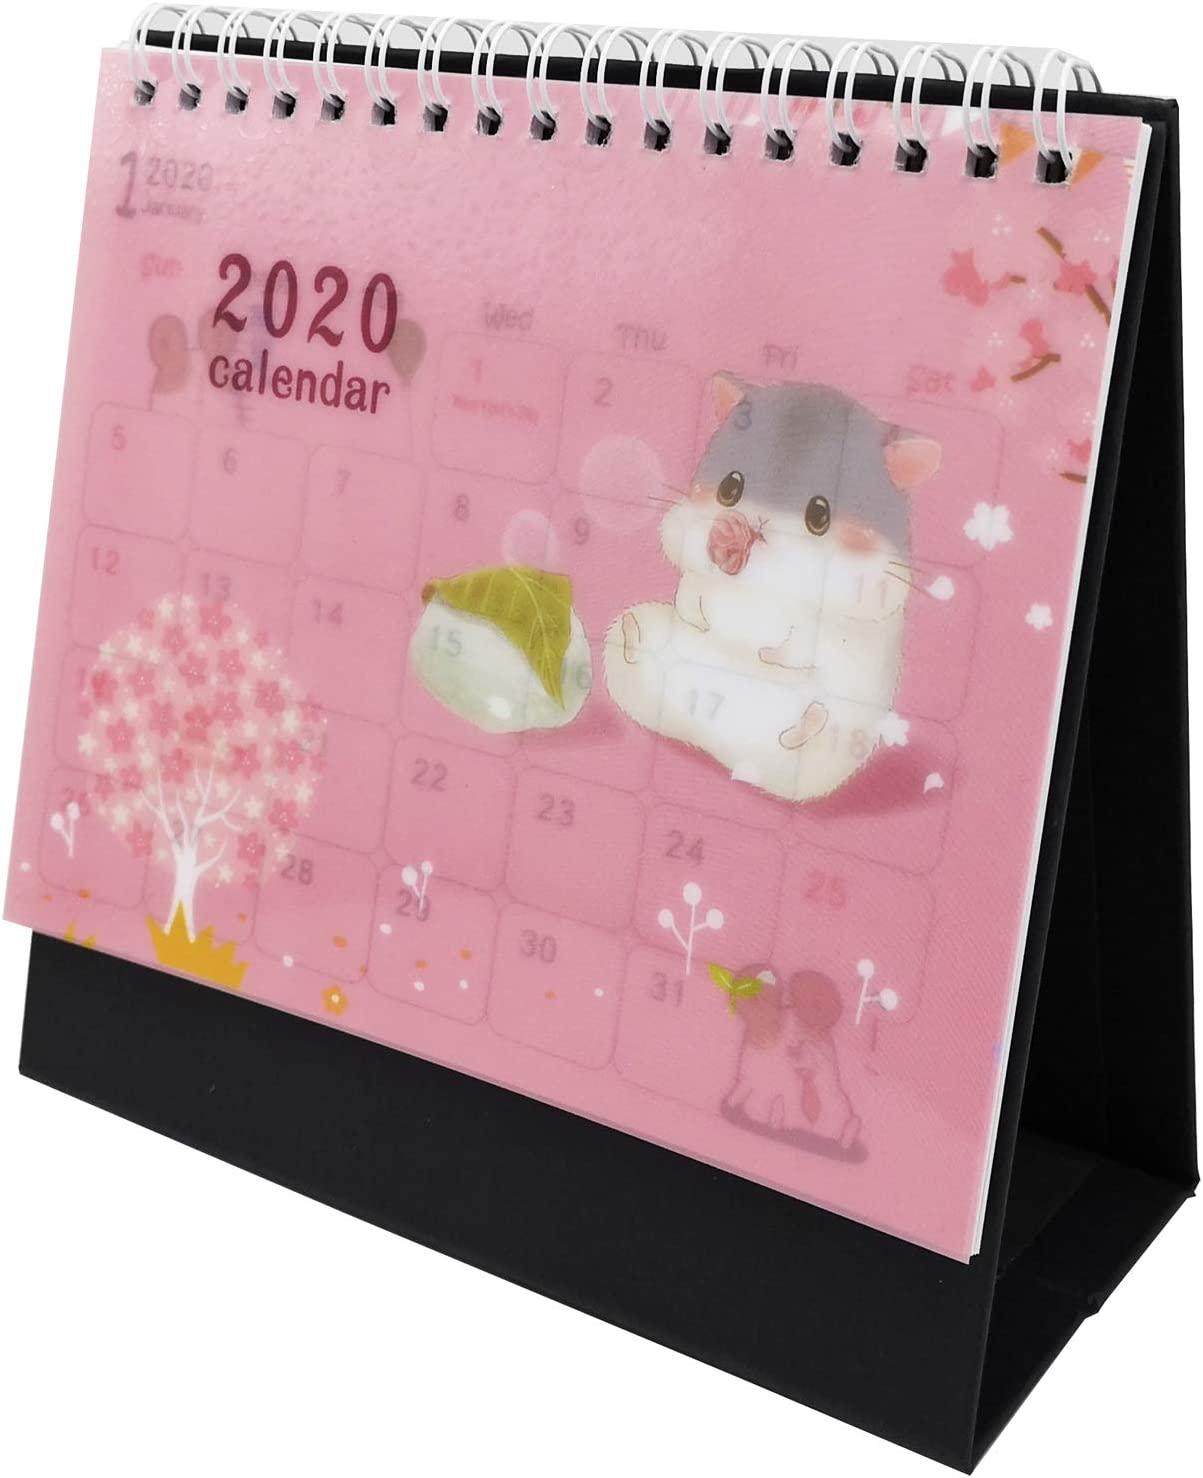 Desk Calendar 2020 Academic Planner Daily Weekly Monthly Yearly Organizer and Goal Journal, Designed to Set Goals and Get Things Done (Hamster)